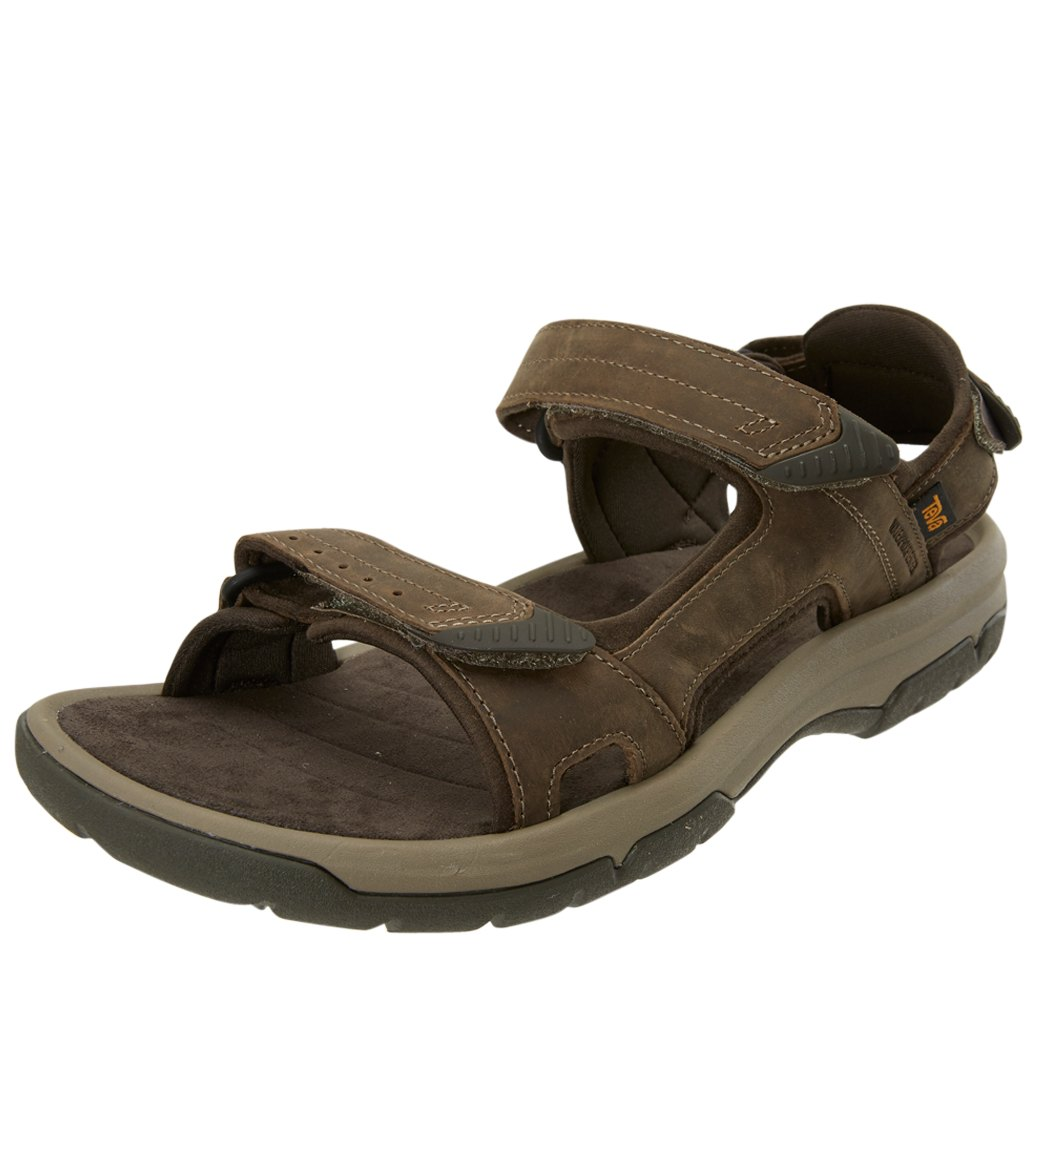 fea0dfd54cb8b Teva Men s Langdon Sandal at SwimOutlet.com - Free Shipping